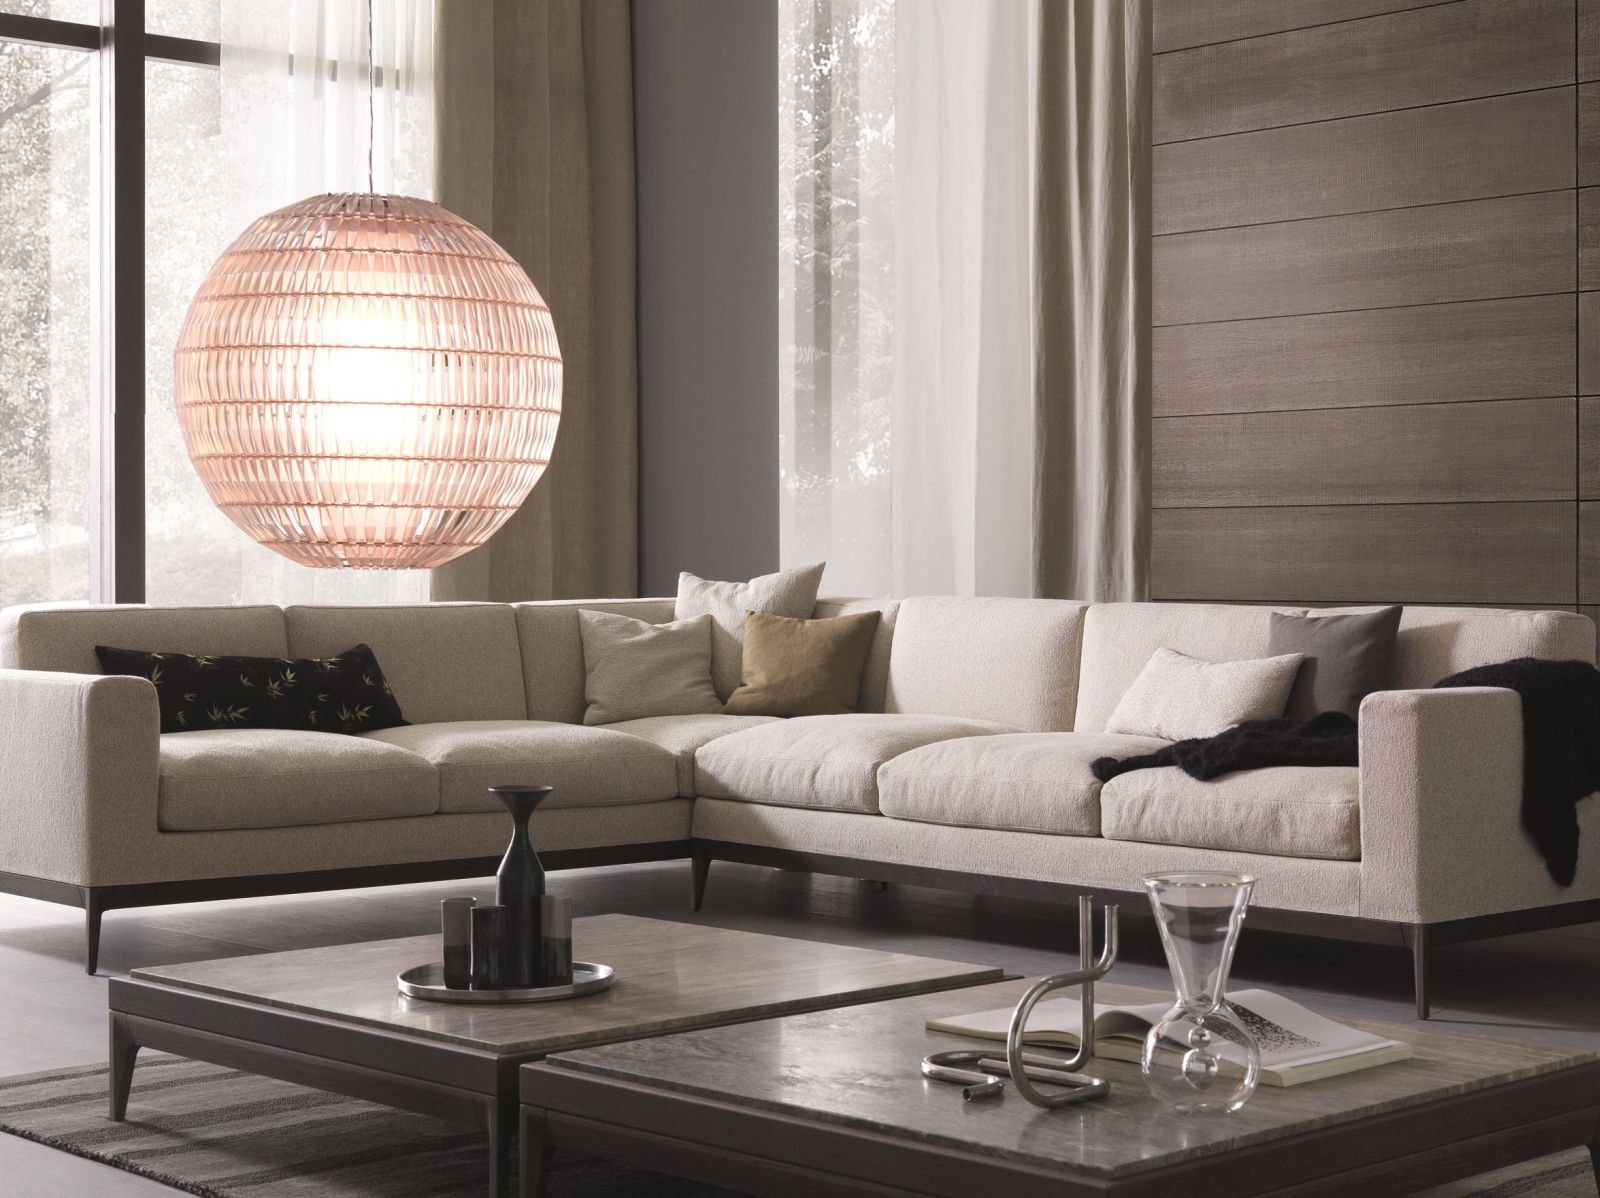 big living room sectionals large wall clocks add space where you need it the most with l-shaped sofas